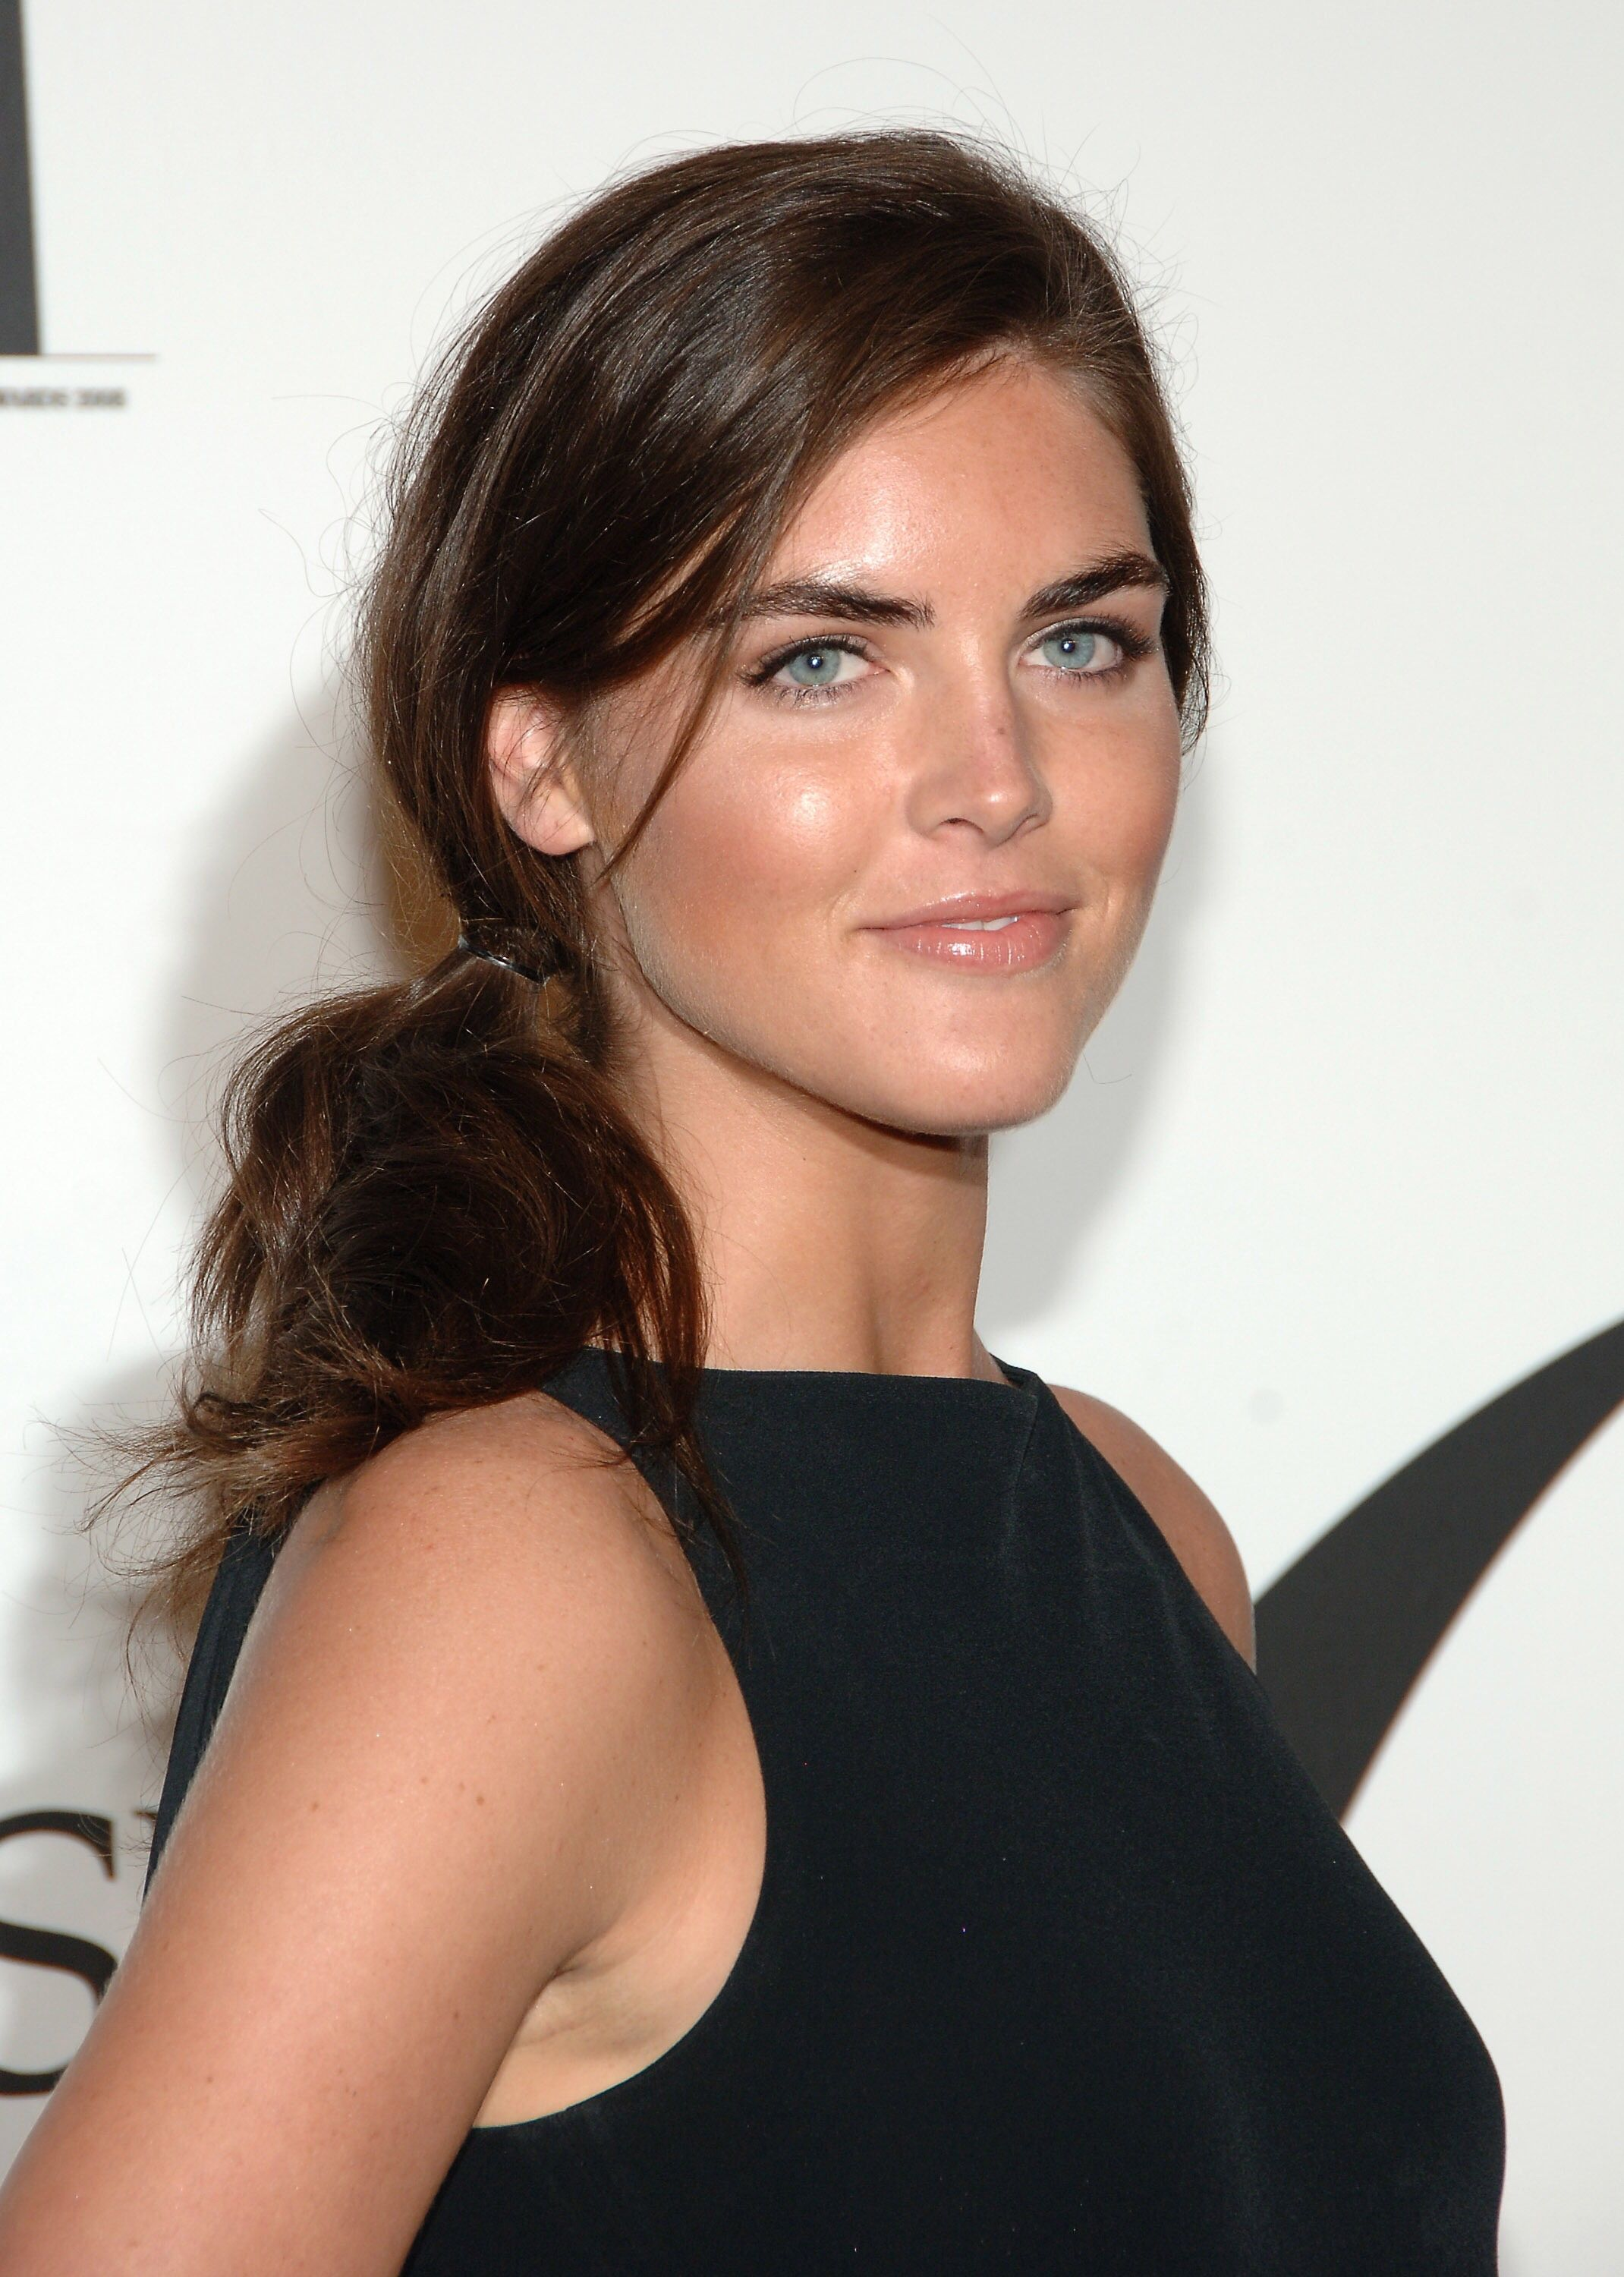 Cleavage Hilary Rhoda nude (41 photos), Sexy, Cleavage, Selfie, braless 2019